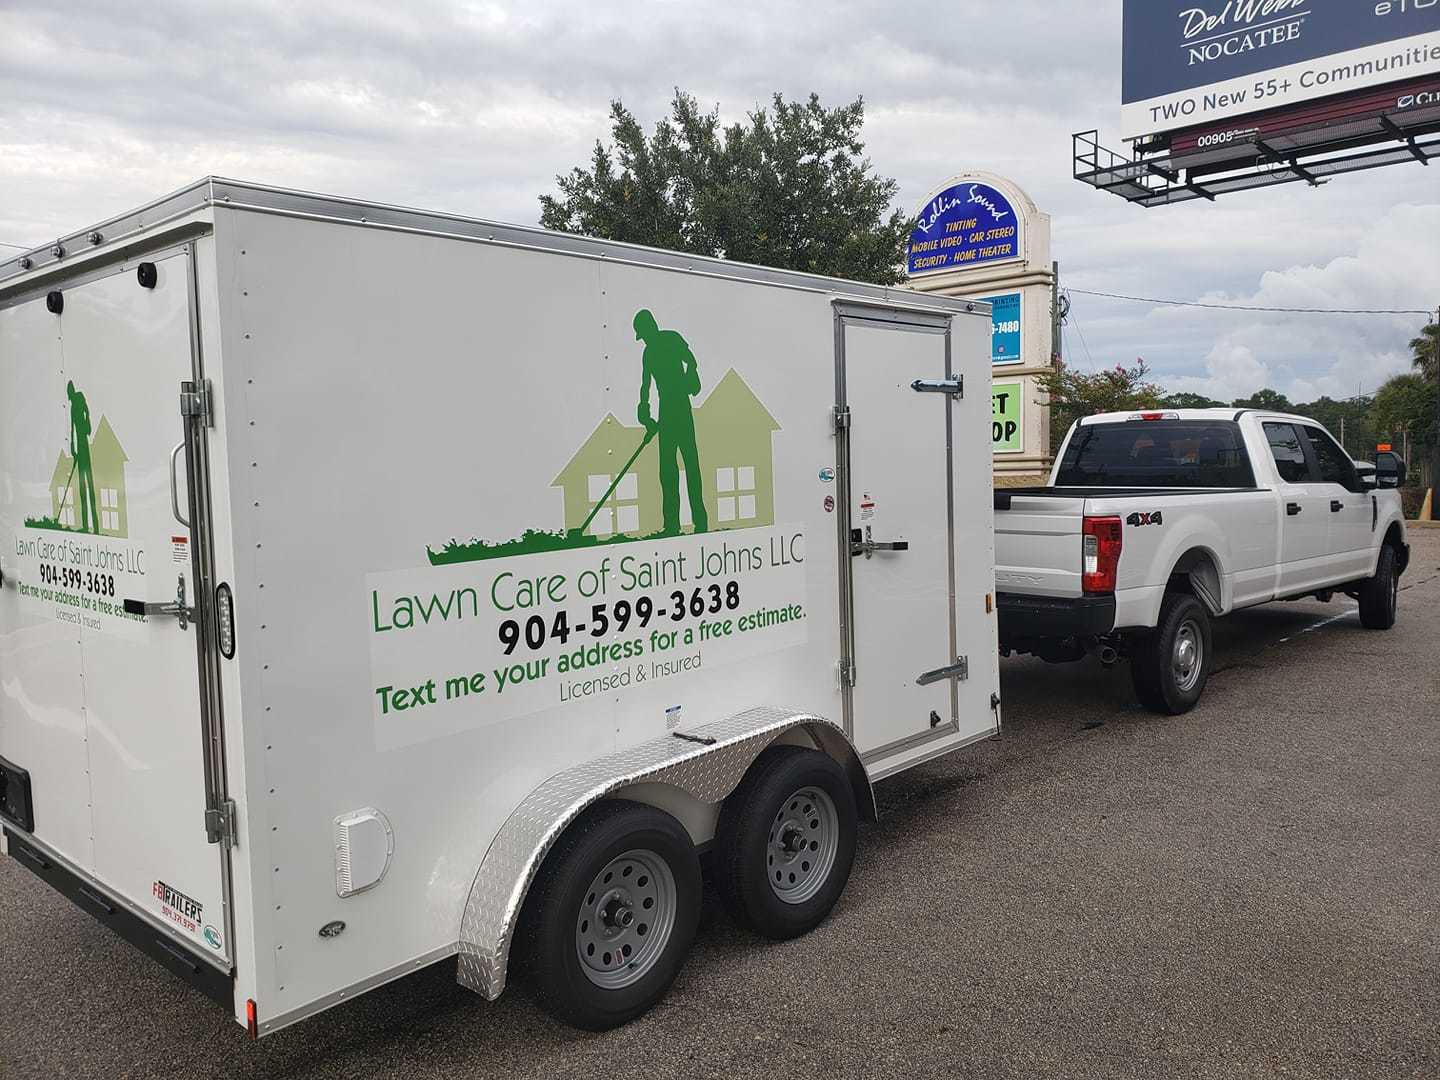 Look for us in your neighborhood! Lawn Care of Saint Johns LLC St. Johns (904)599-3638